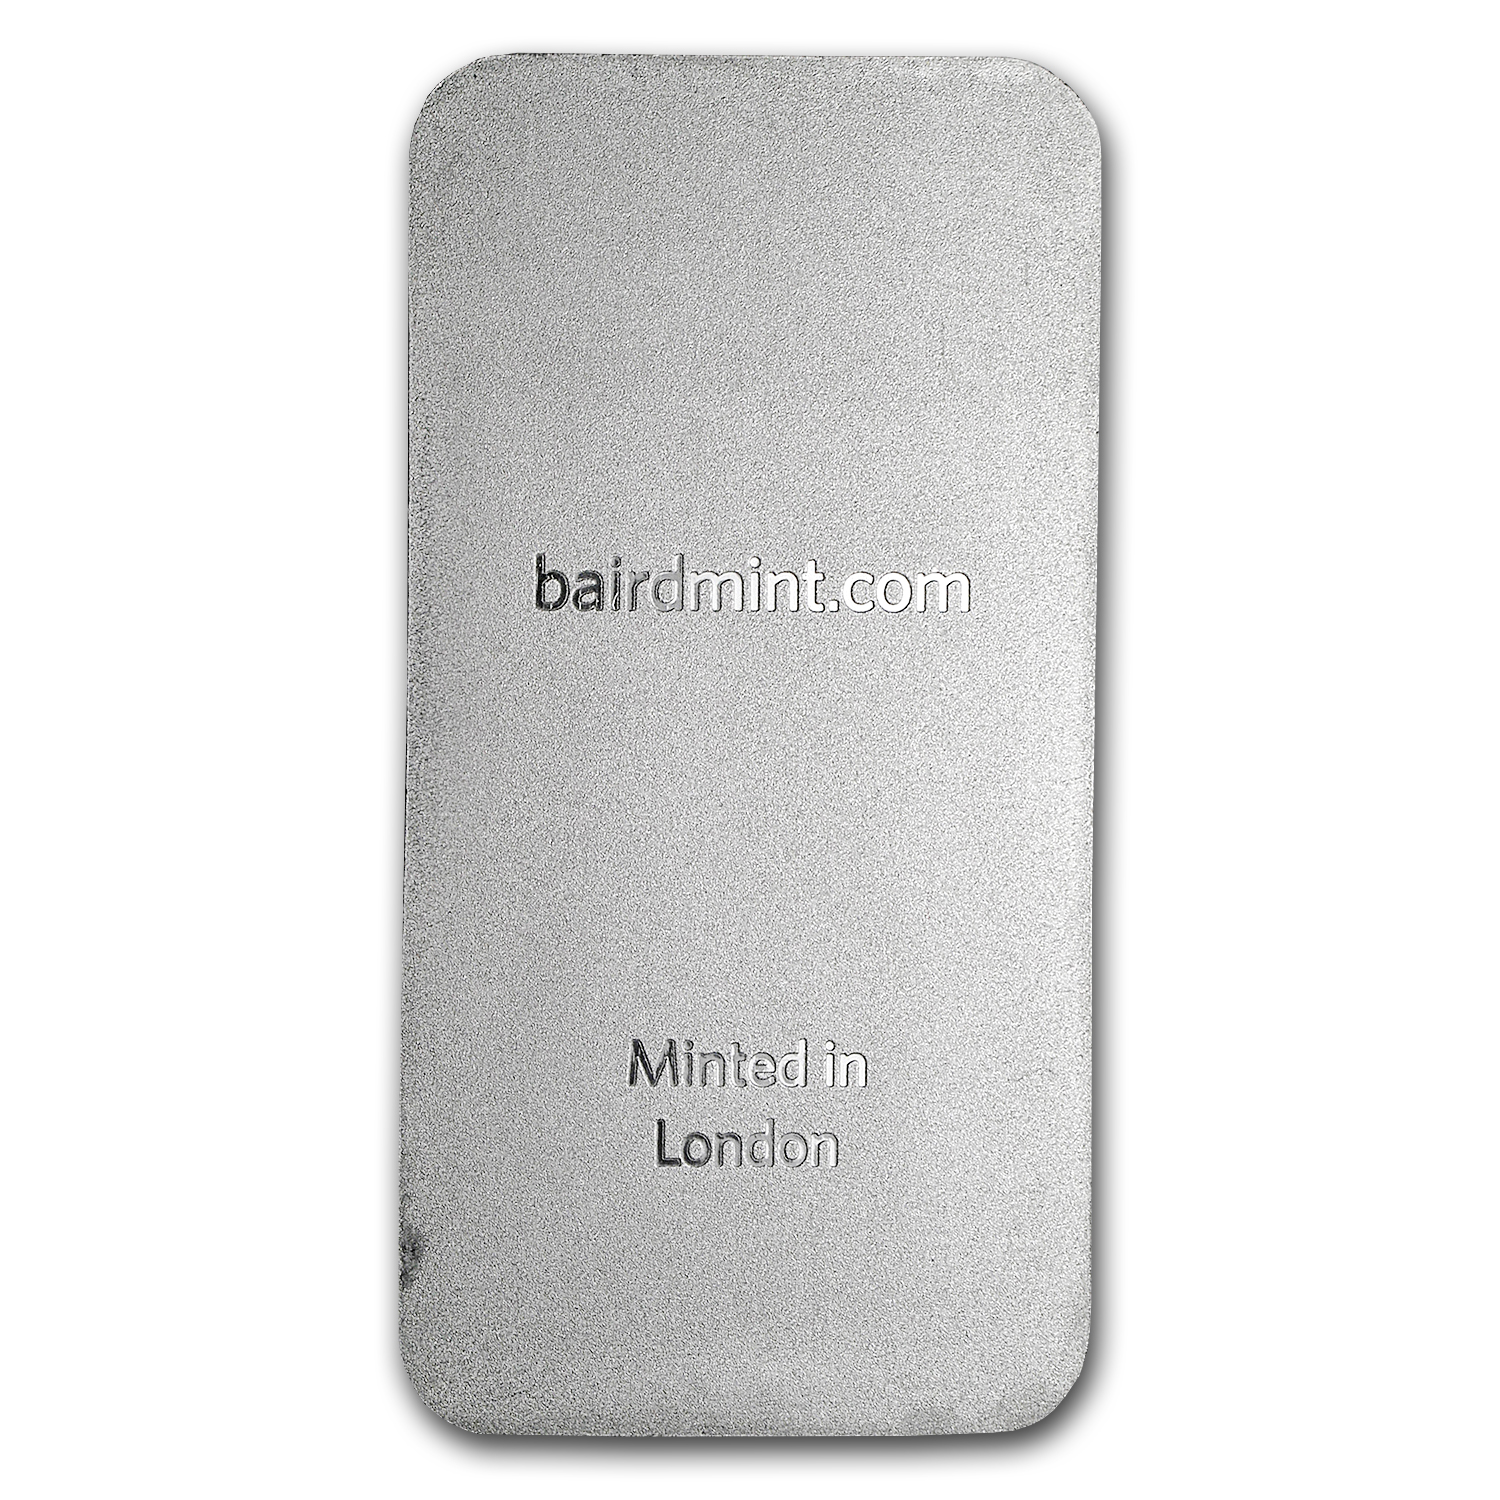 5 oz Platinum Bar - Baird & Co. (.9995 Fine)